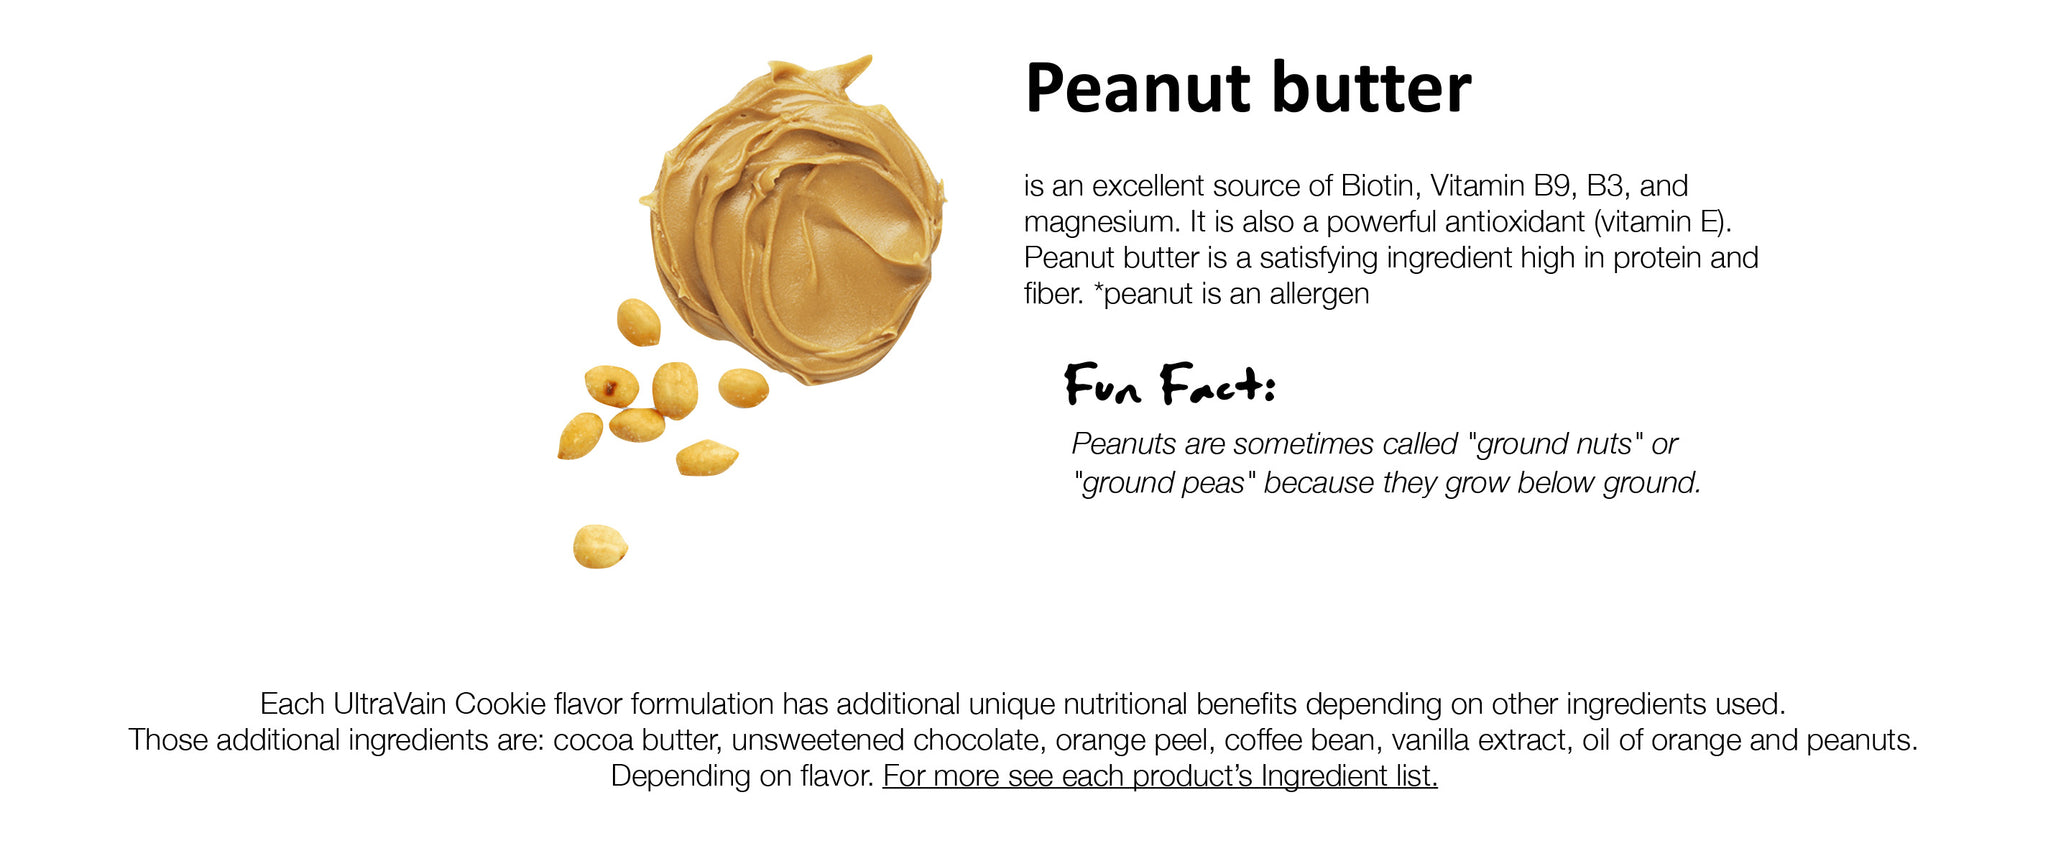 Peanut butter is an excellent source of Biotin, Vitamin B9, B3, and magnesium. It is also a powerful antioxidant (vitamin E). Peanut butter is a satisfying ingredient high in protein and fiber. *peanut is an allergen